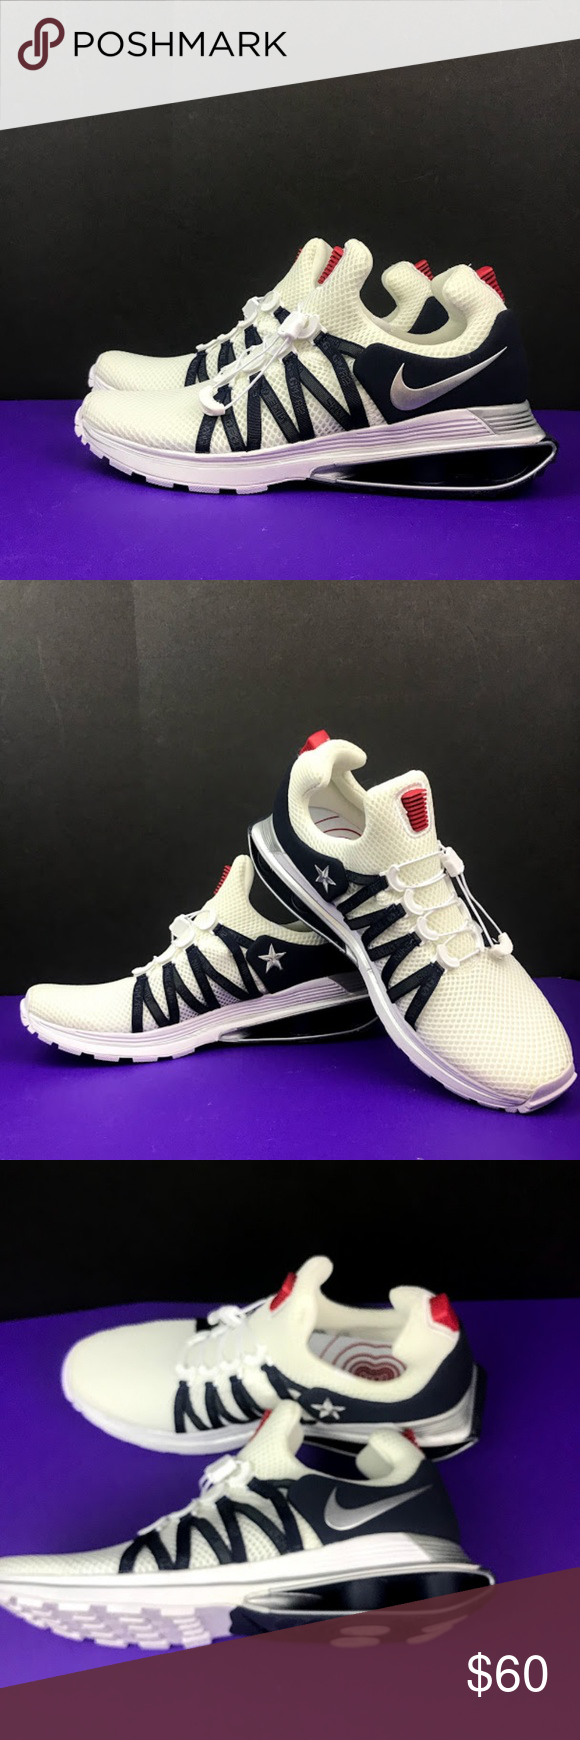 44b2a461e76c FILA ORIGINAL FITNESS ZIPPER SHOES Sneakers 10.5 FILA ORIGINAL FITNESS  ZIPPER 1FM00009-163 WHITE Size  US 10.5